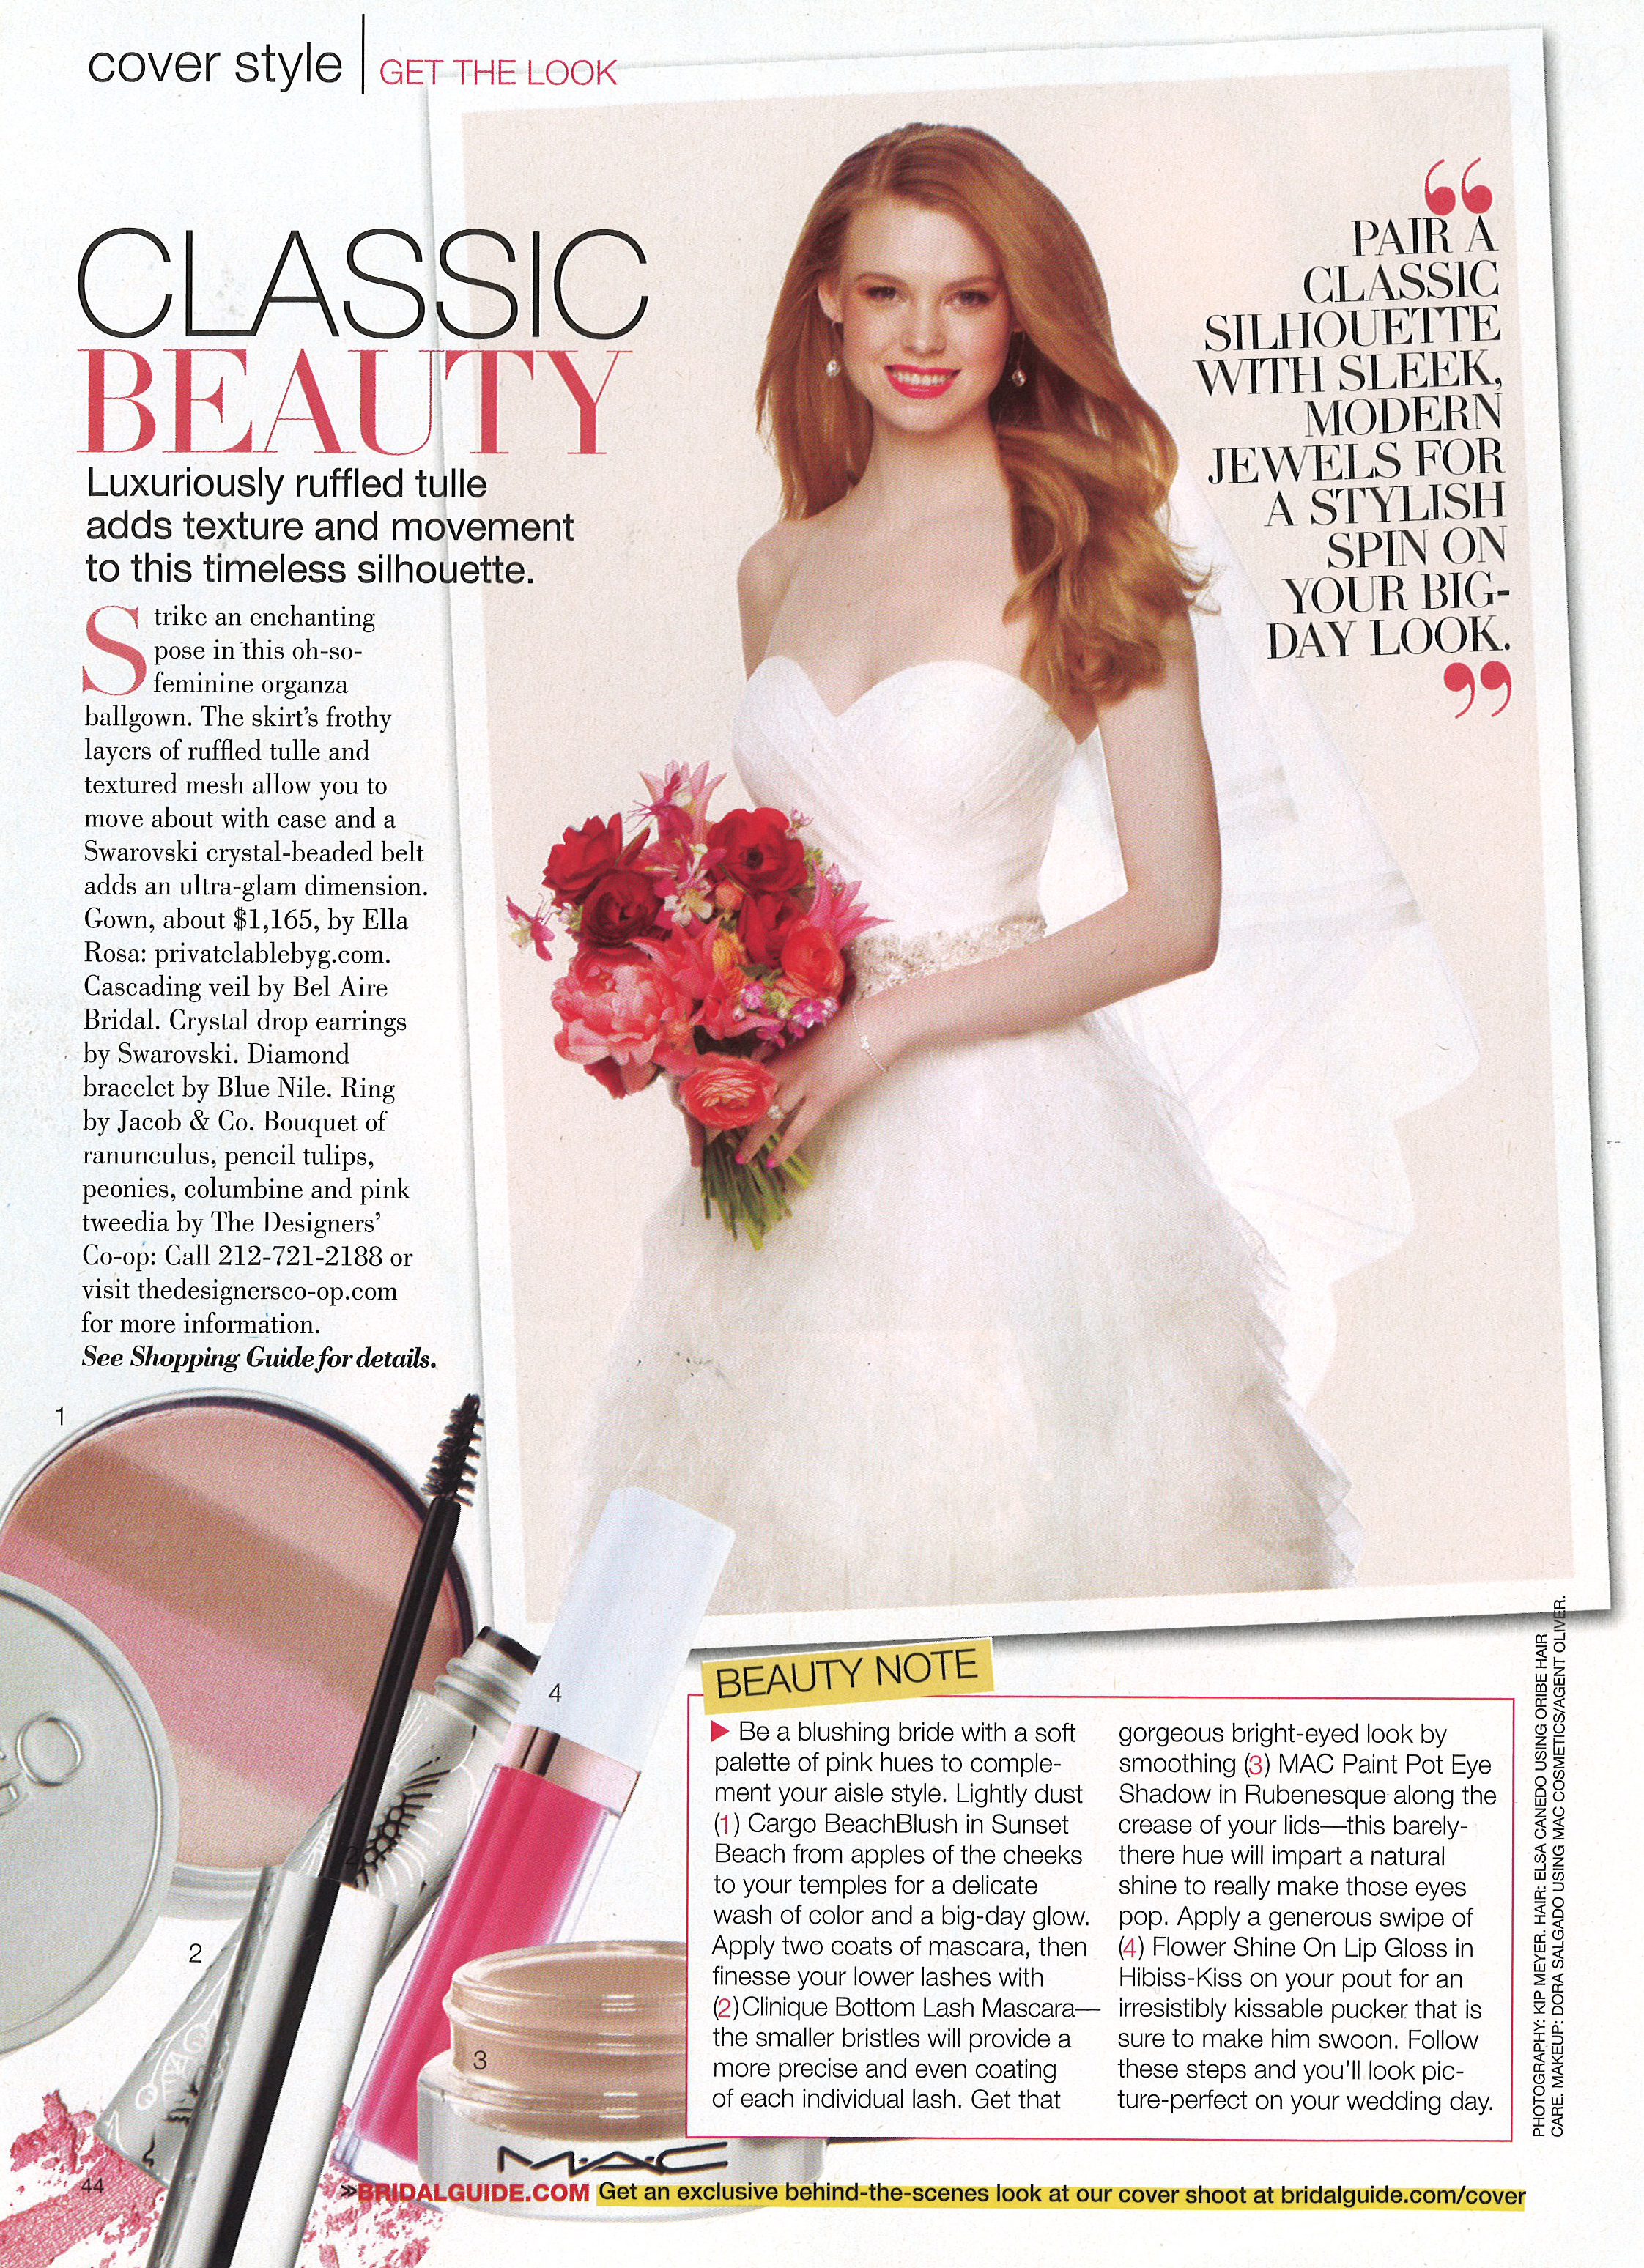 5-Bridal Guide September October 2013 Page 44.jpg